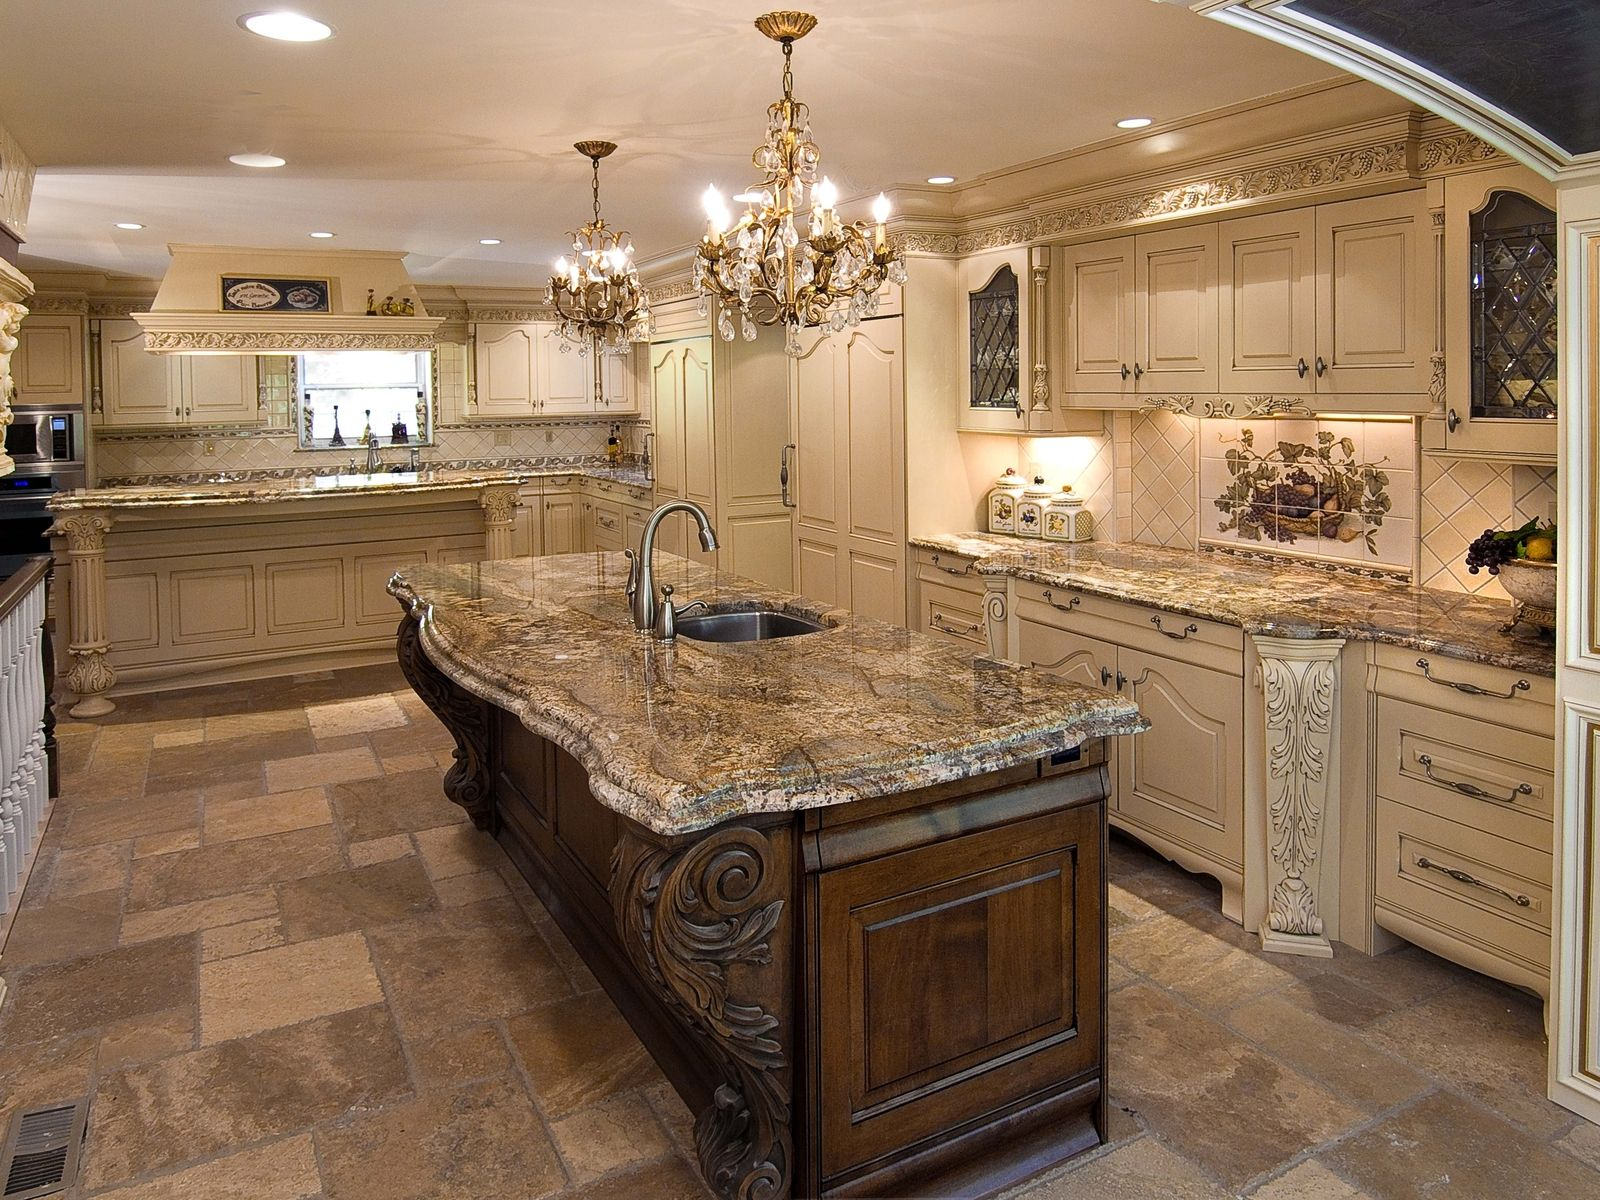 Ornate kitchen cabinets custom made ornate kitchen by - Custom made cabinet ...